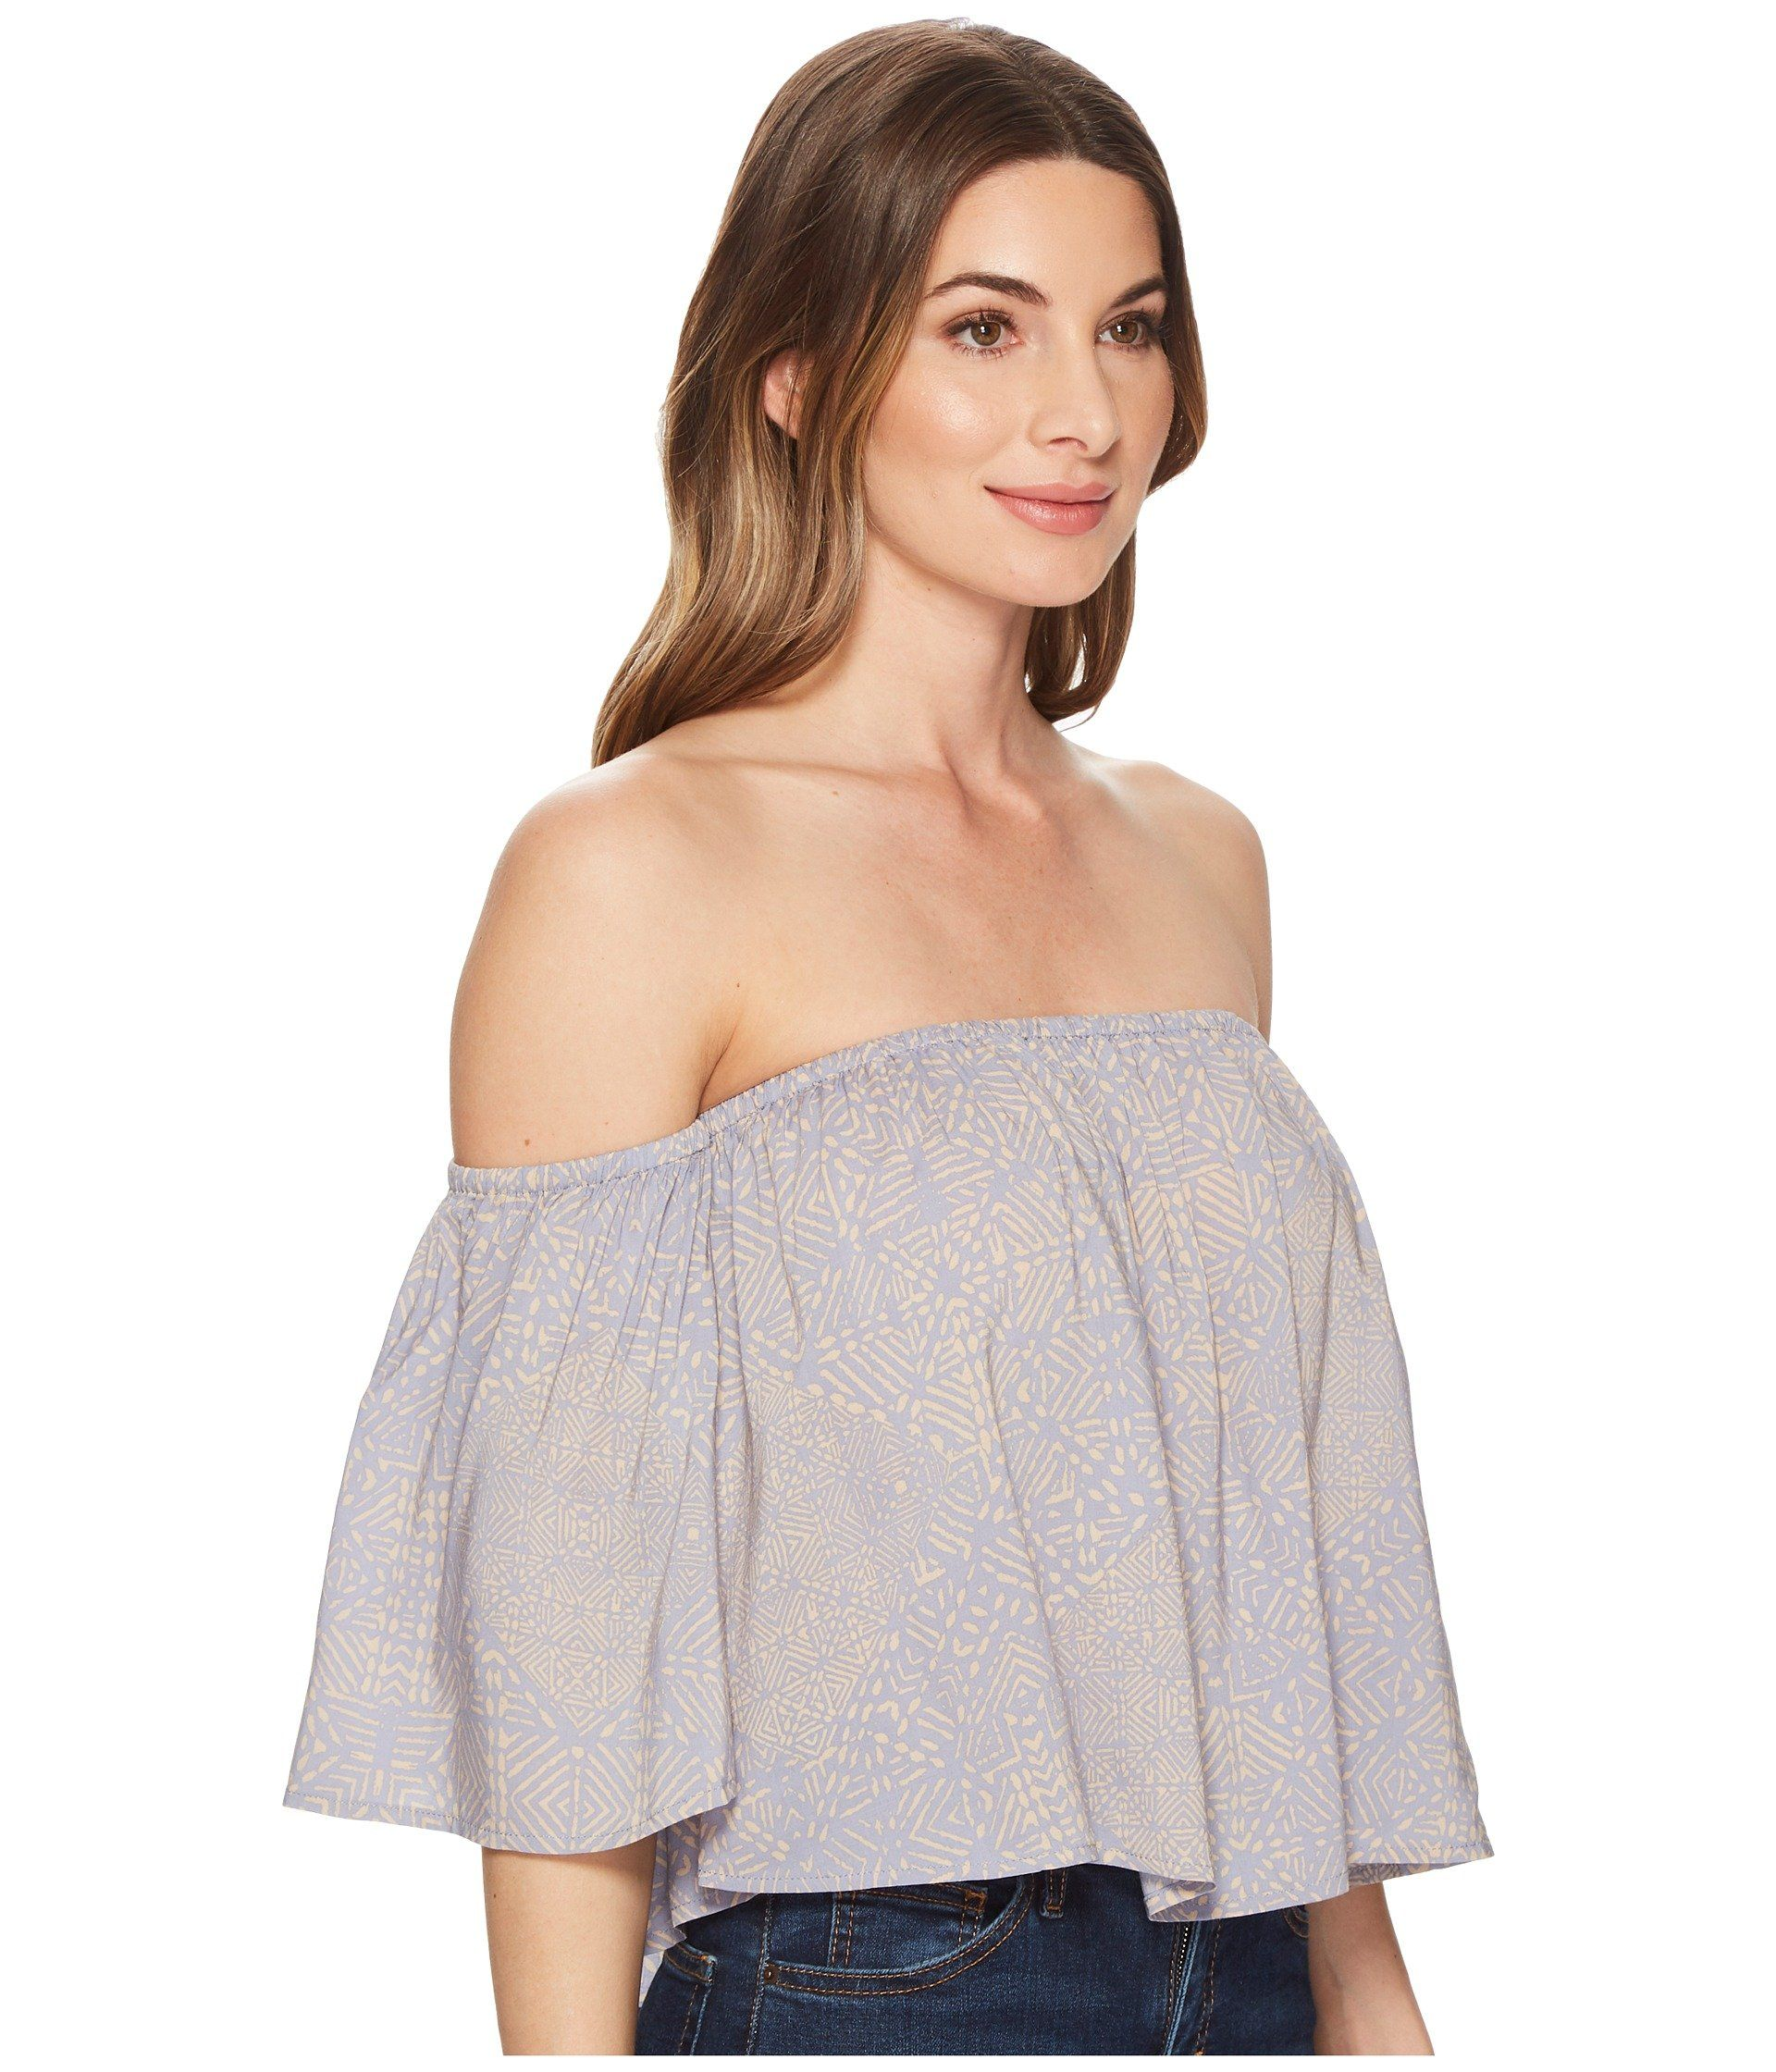 Cora Skinner Zappos 2018 Womens clothing tops, Tops, Women